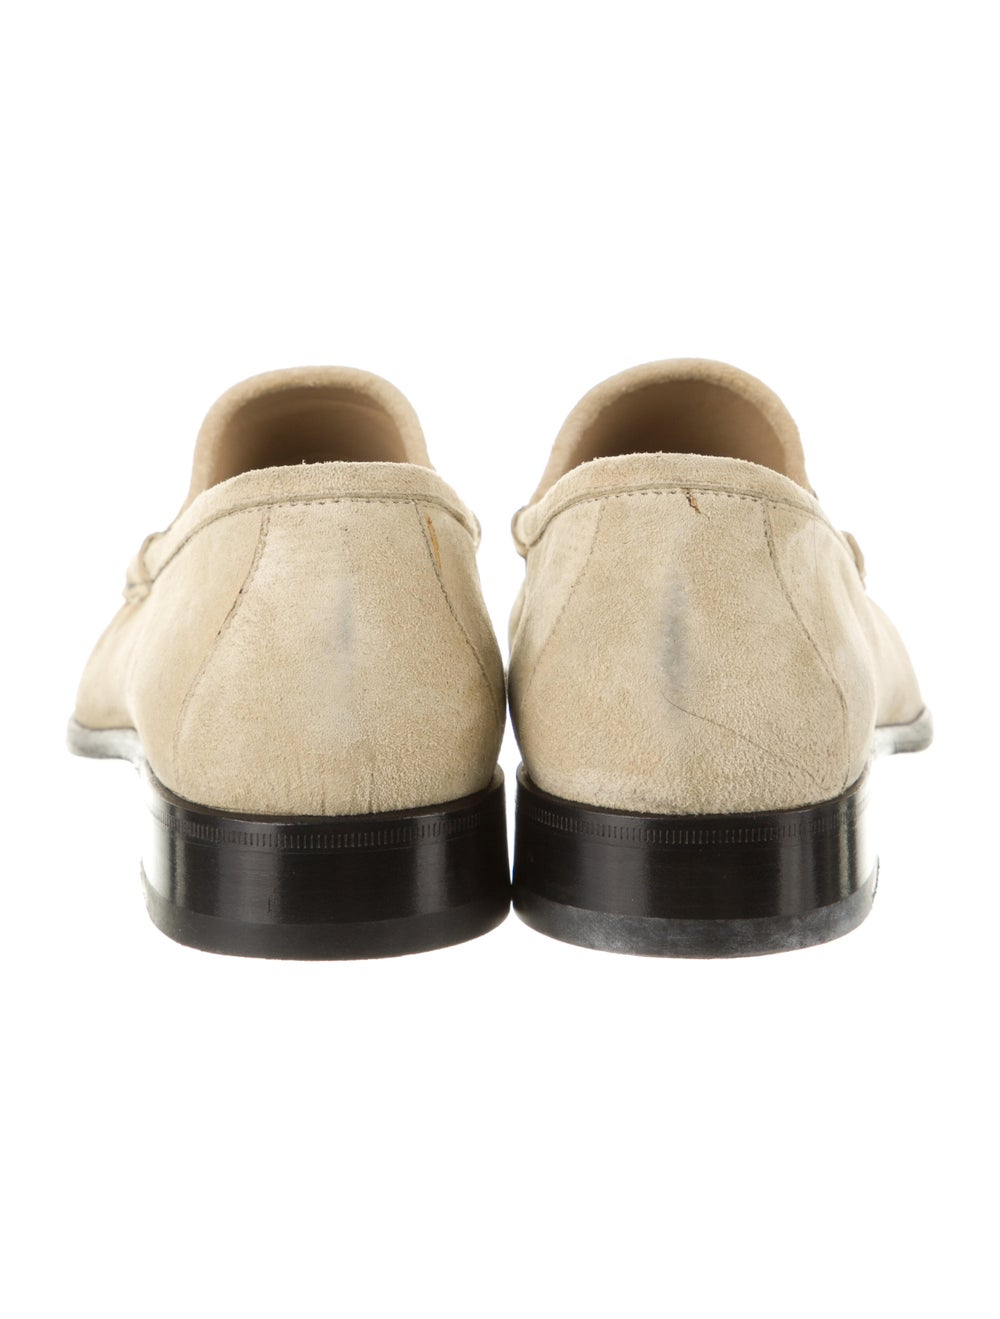 Gucci Horsebit Accent Suede Dress Loafers - image 4